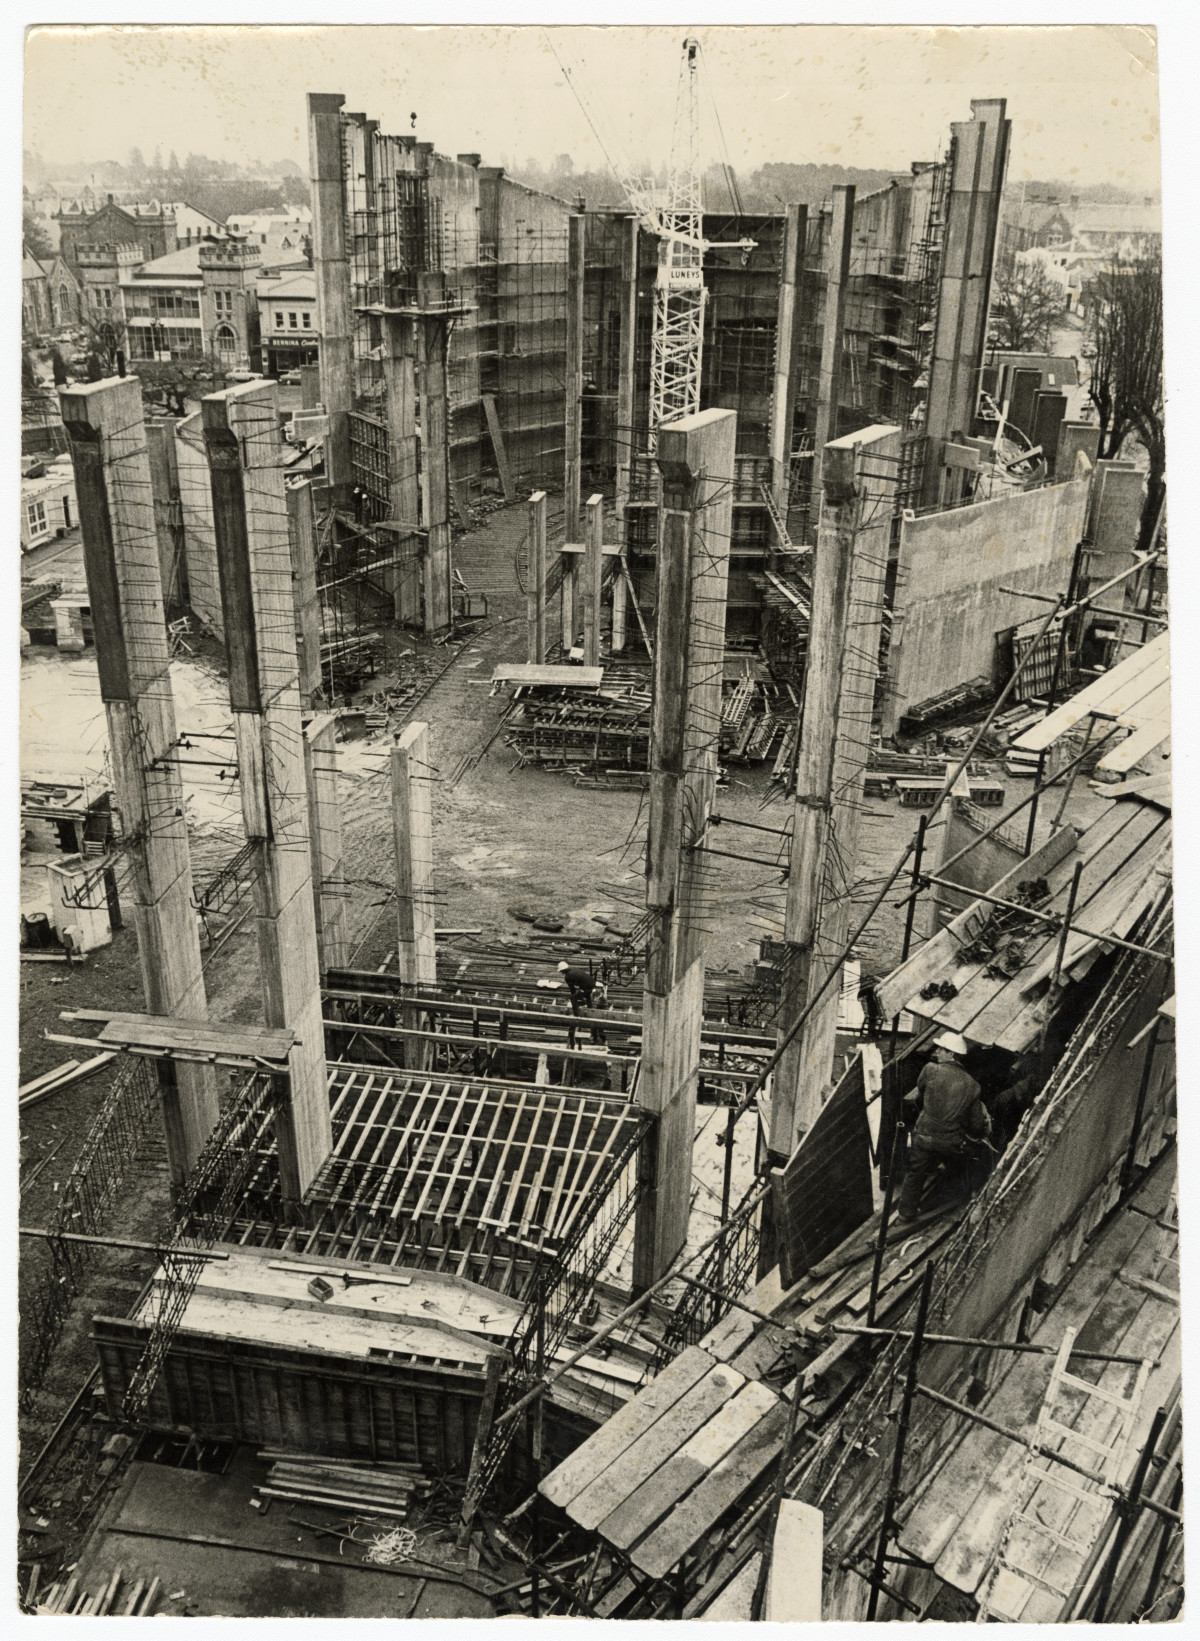 Western view of Town Hall construction. 20 August 1970. Christchurch Star archive. In copyright. CCL-StarP-02789A https://discoverywall.nz/media/65941